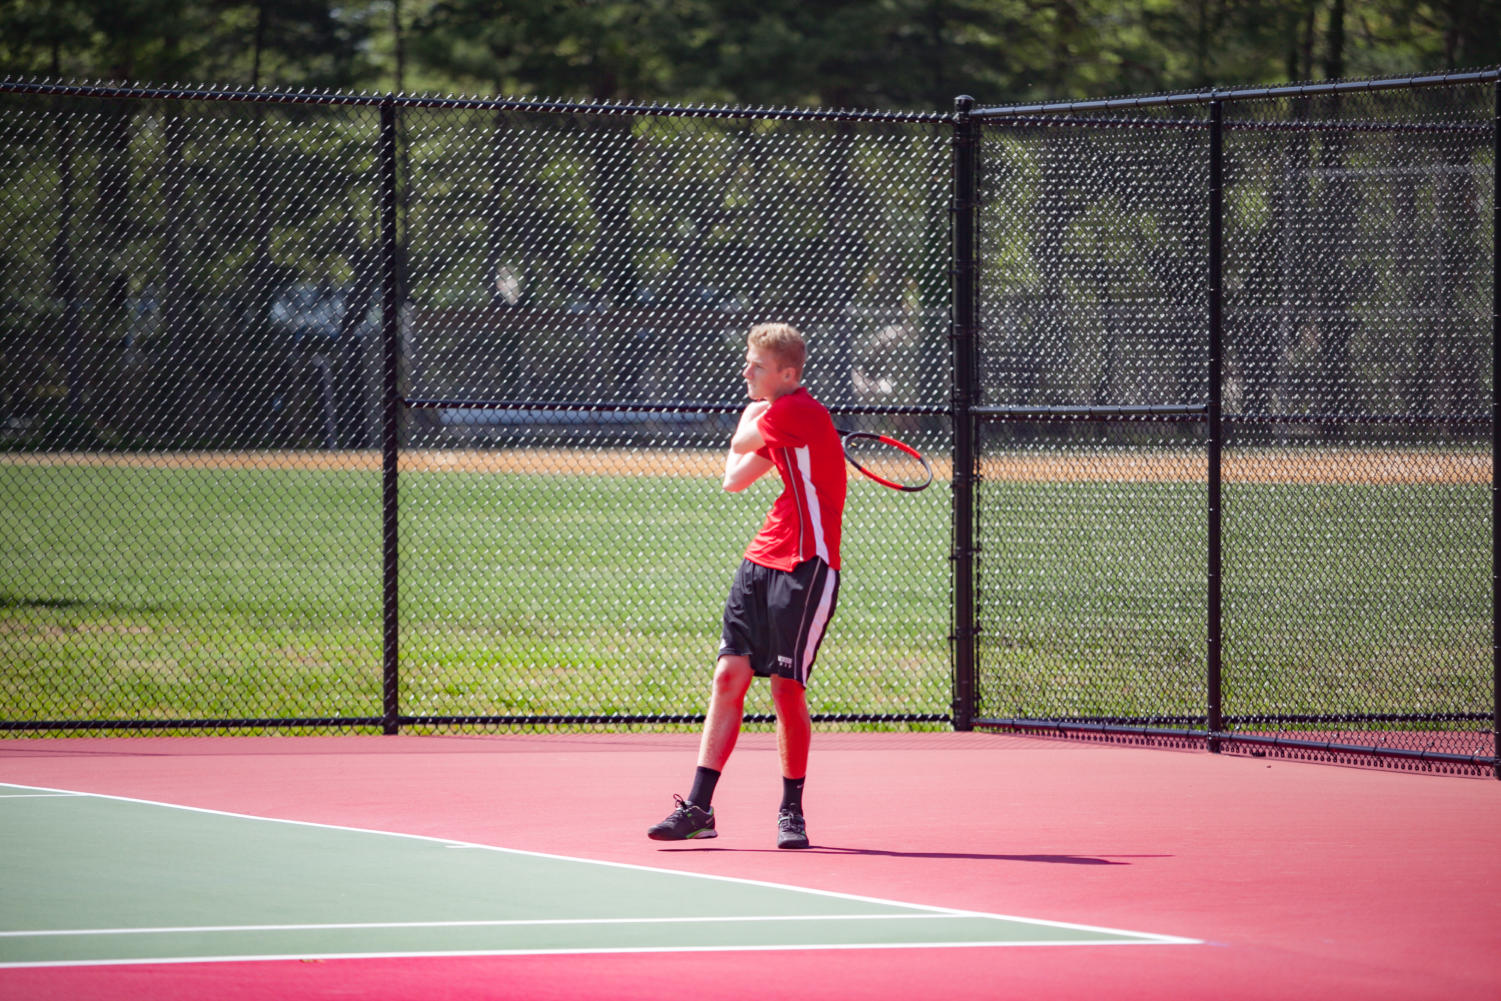 Senior Ronnie Runquist hits the ball.